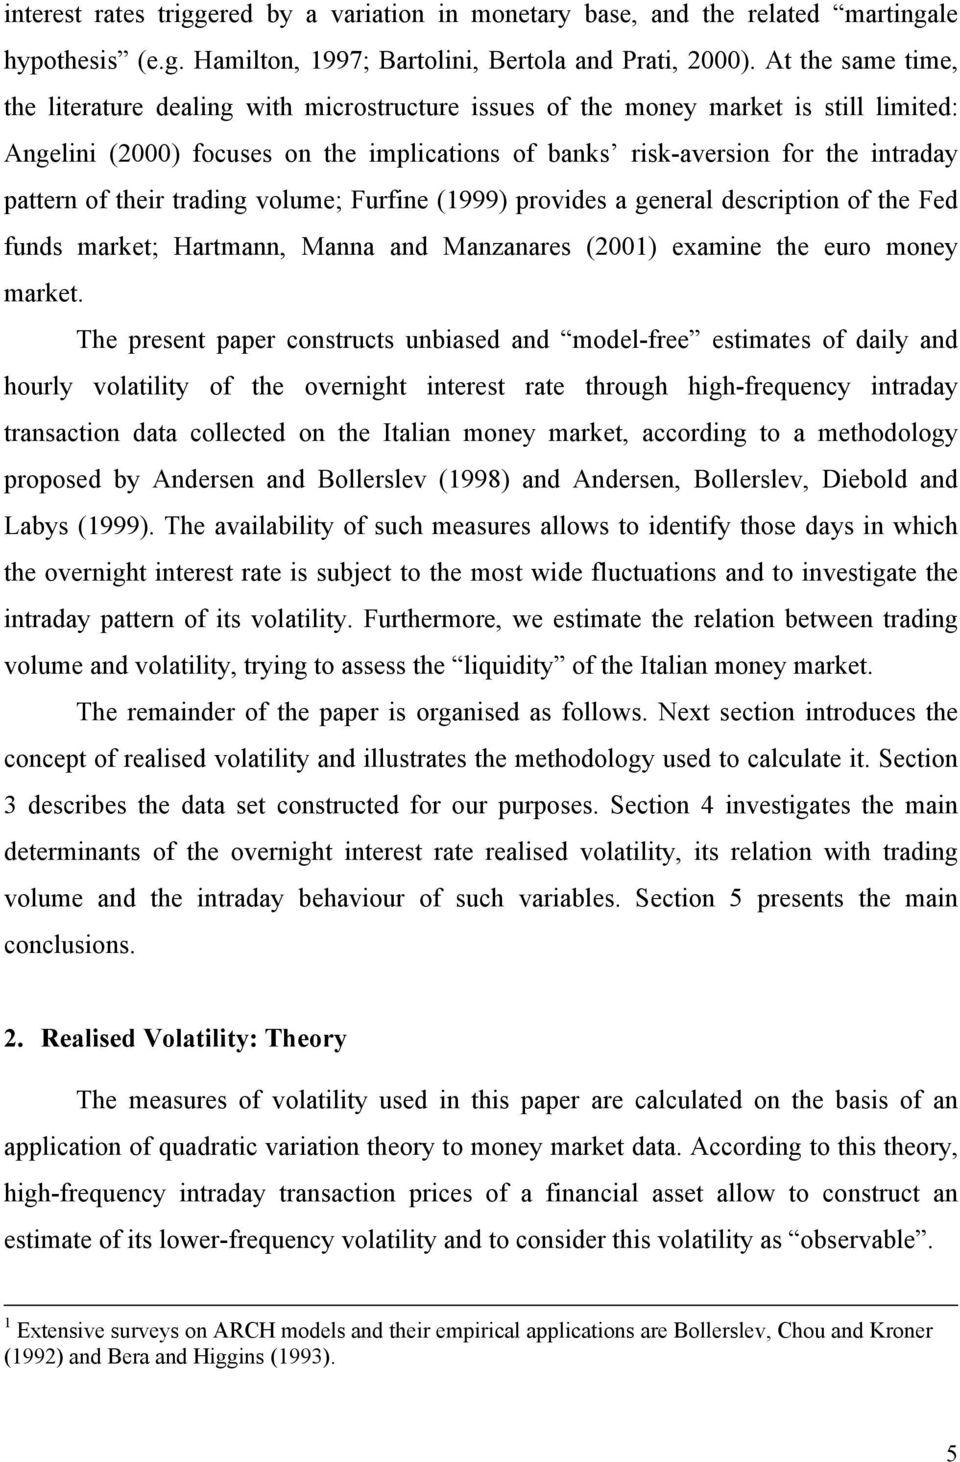 of their trading volume; Furfine (1999) provides a general description of the Fed funds market; Hartmann, Manna and Manzanares (2001) examine the euro money market.